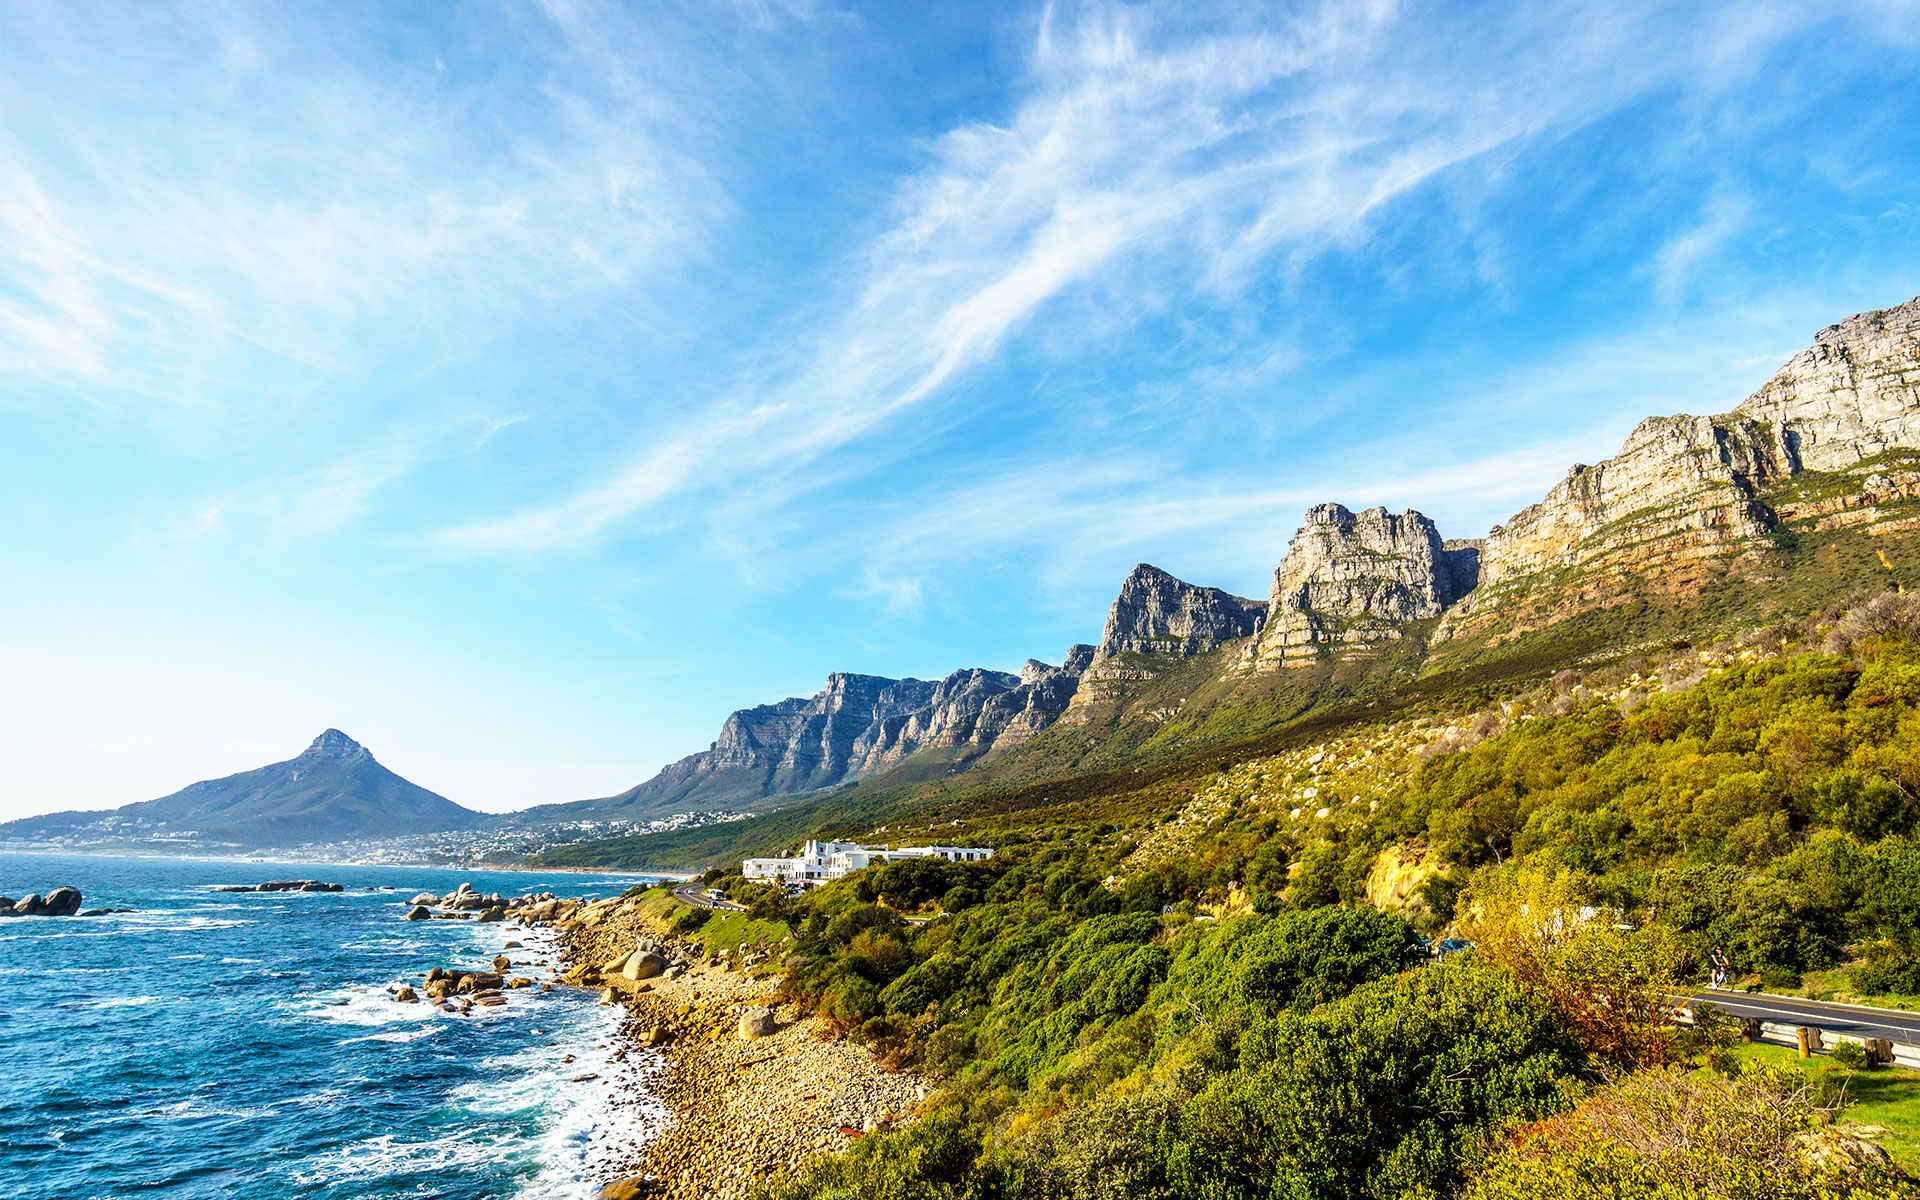 Savanna Safaris Cape Town Coastline